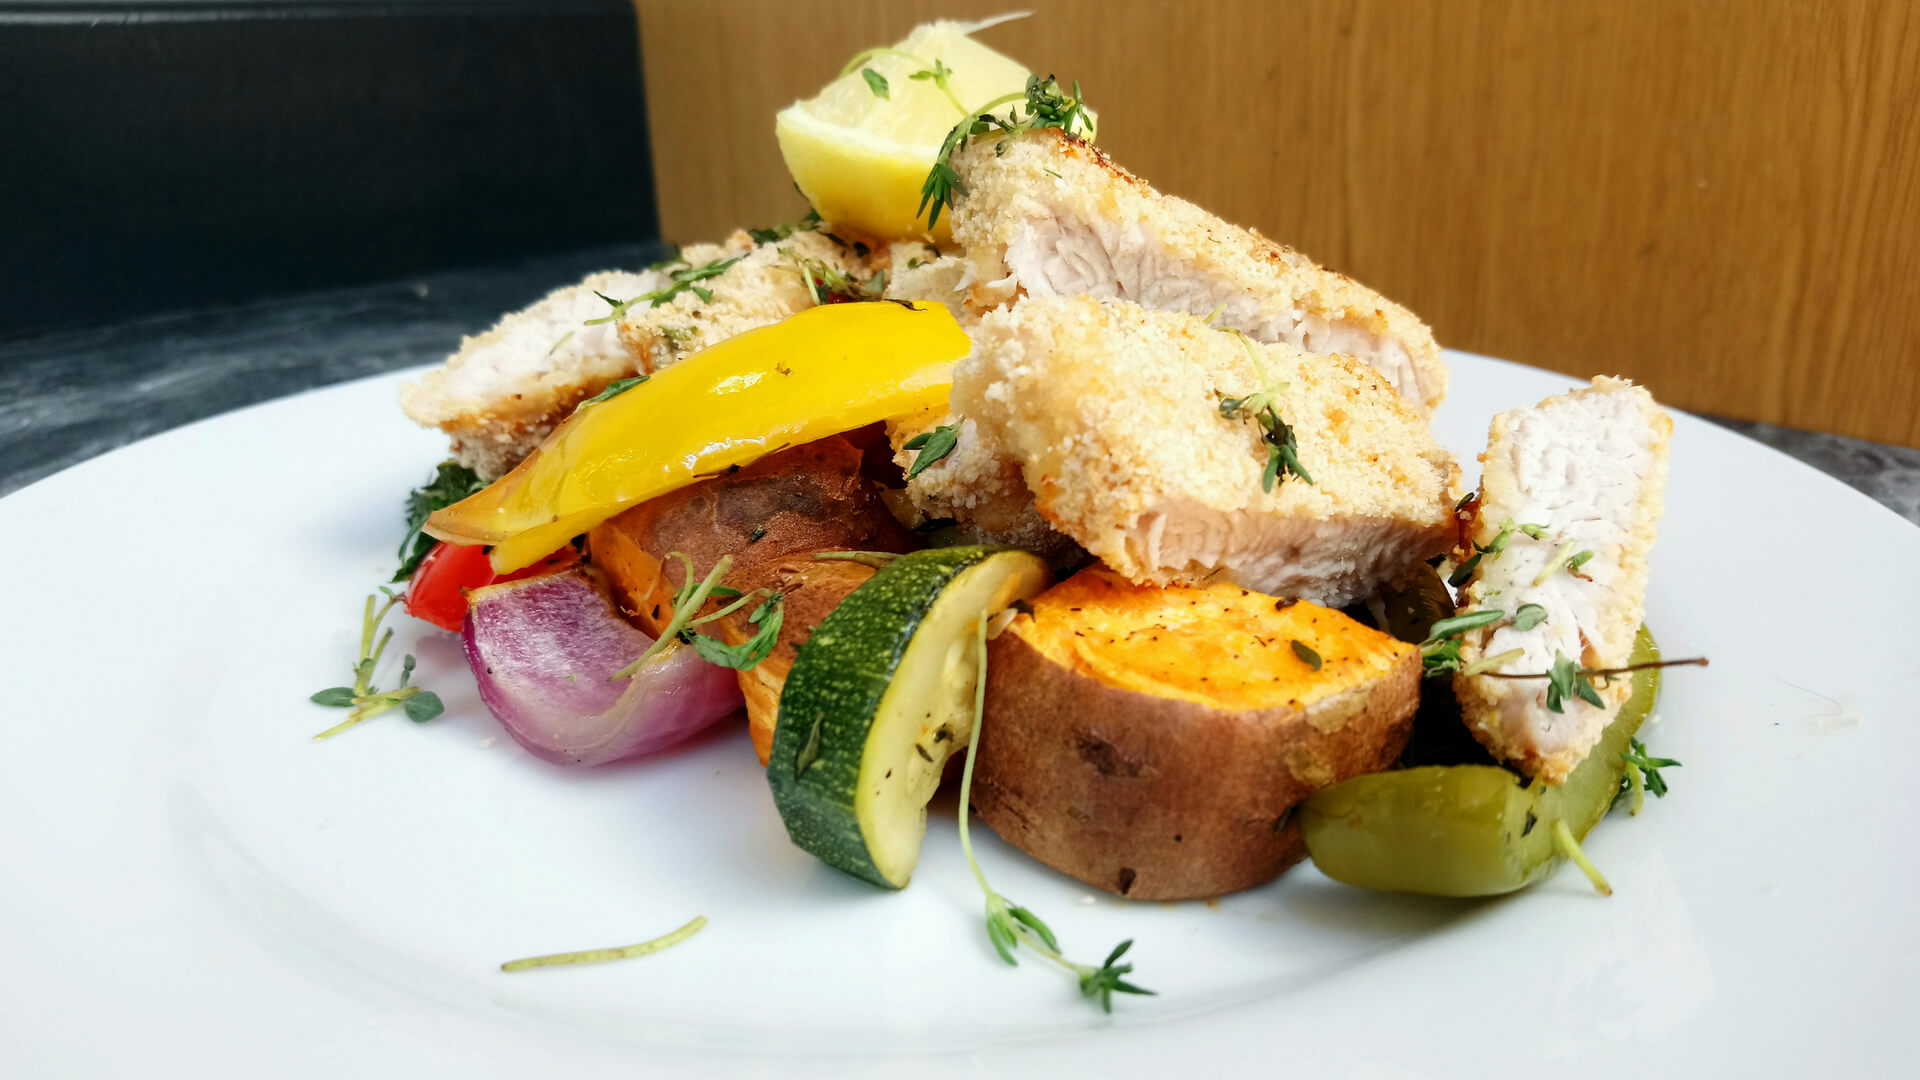 Turkey escallops with roasted vegetables